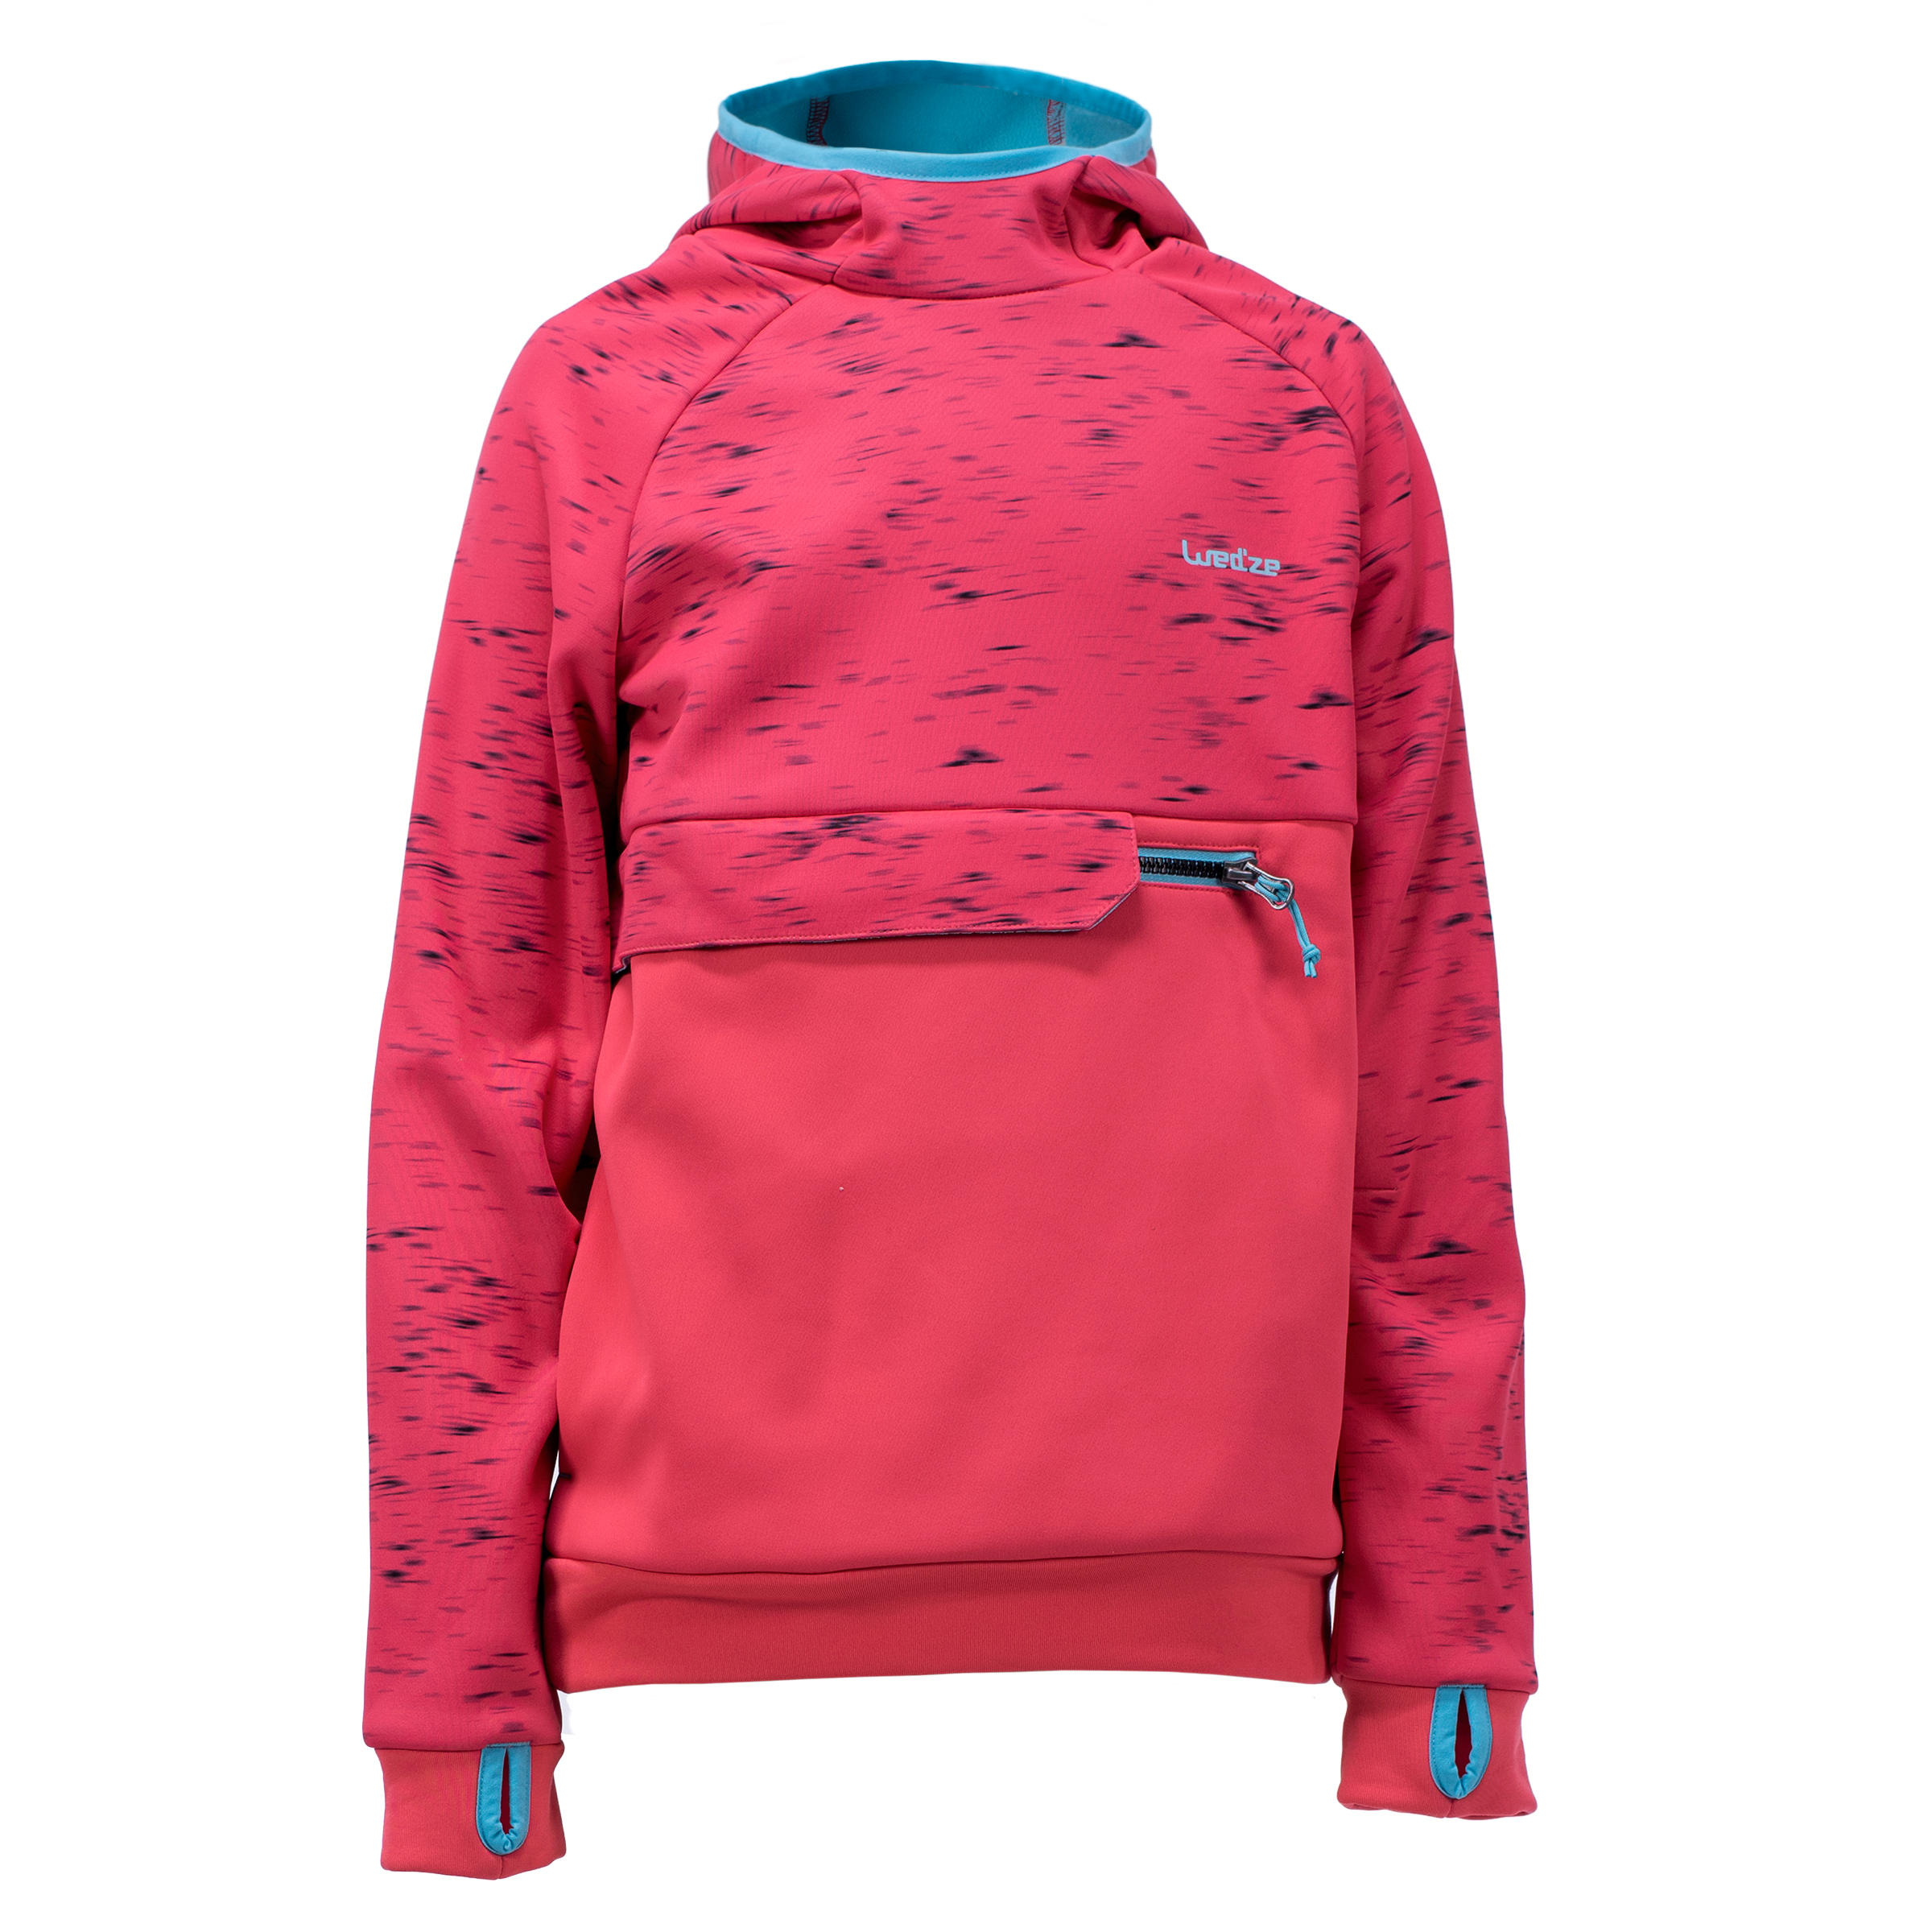 SNB HDY Girls' Snowboard and Ski Sweatshirt - Strawberry Pink